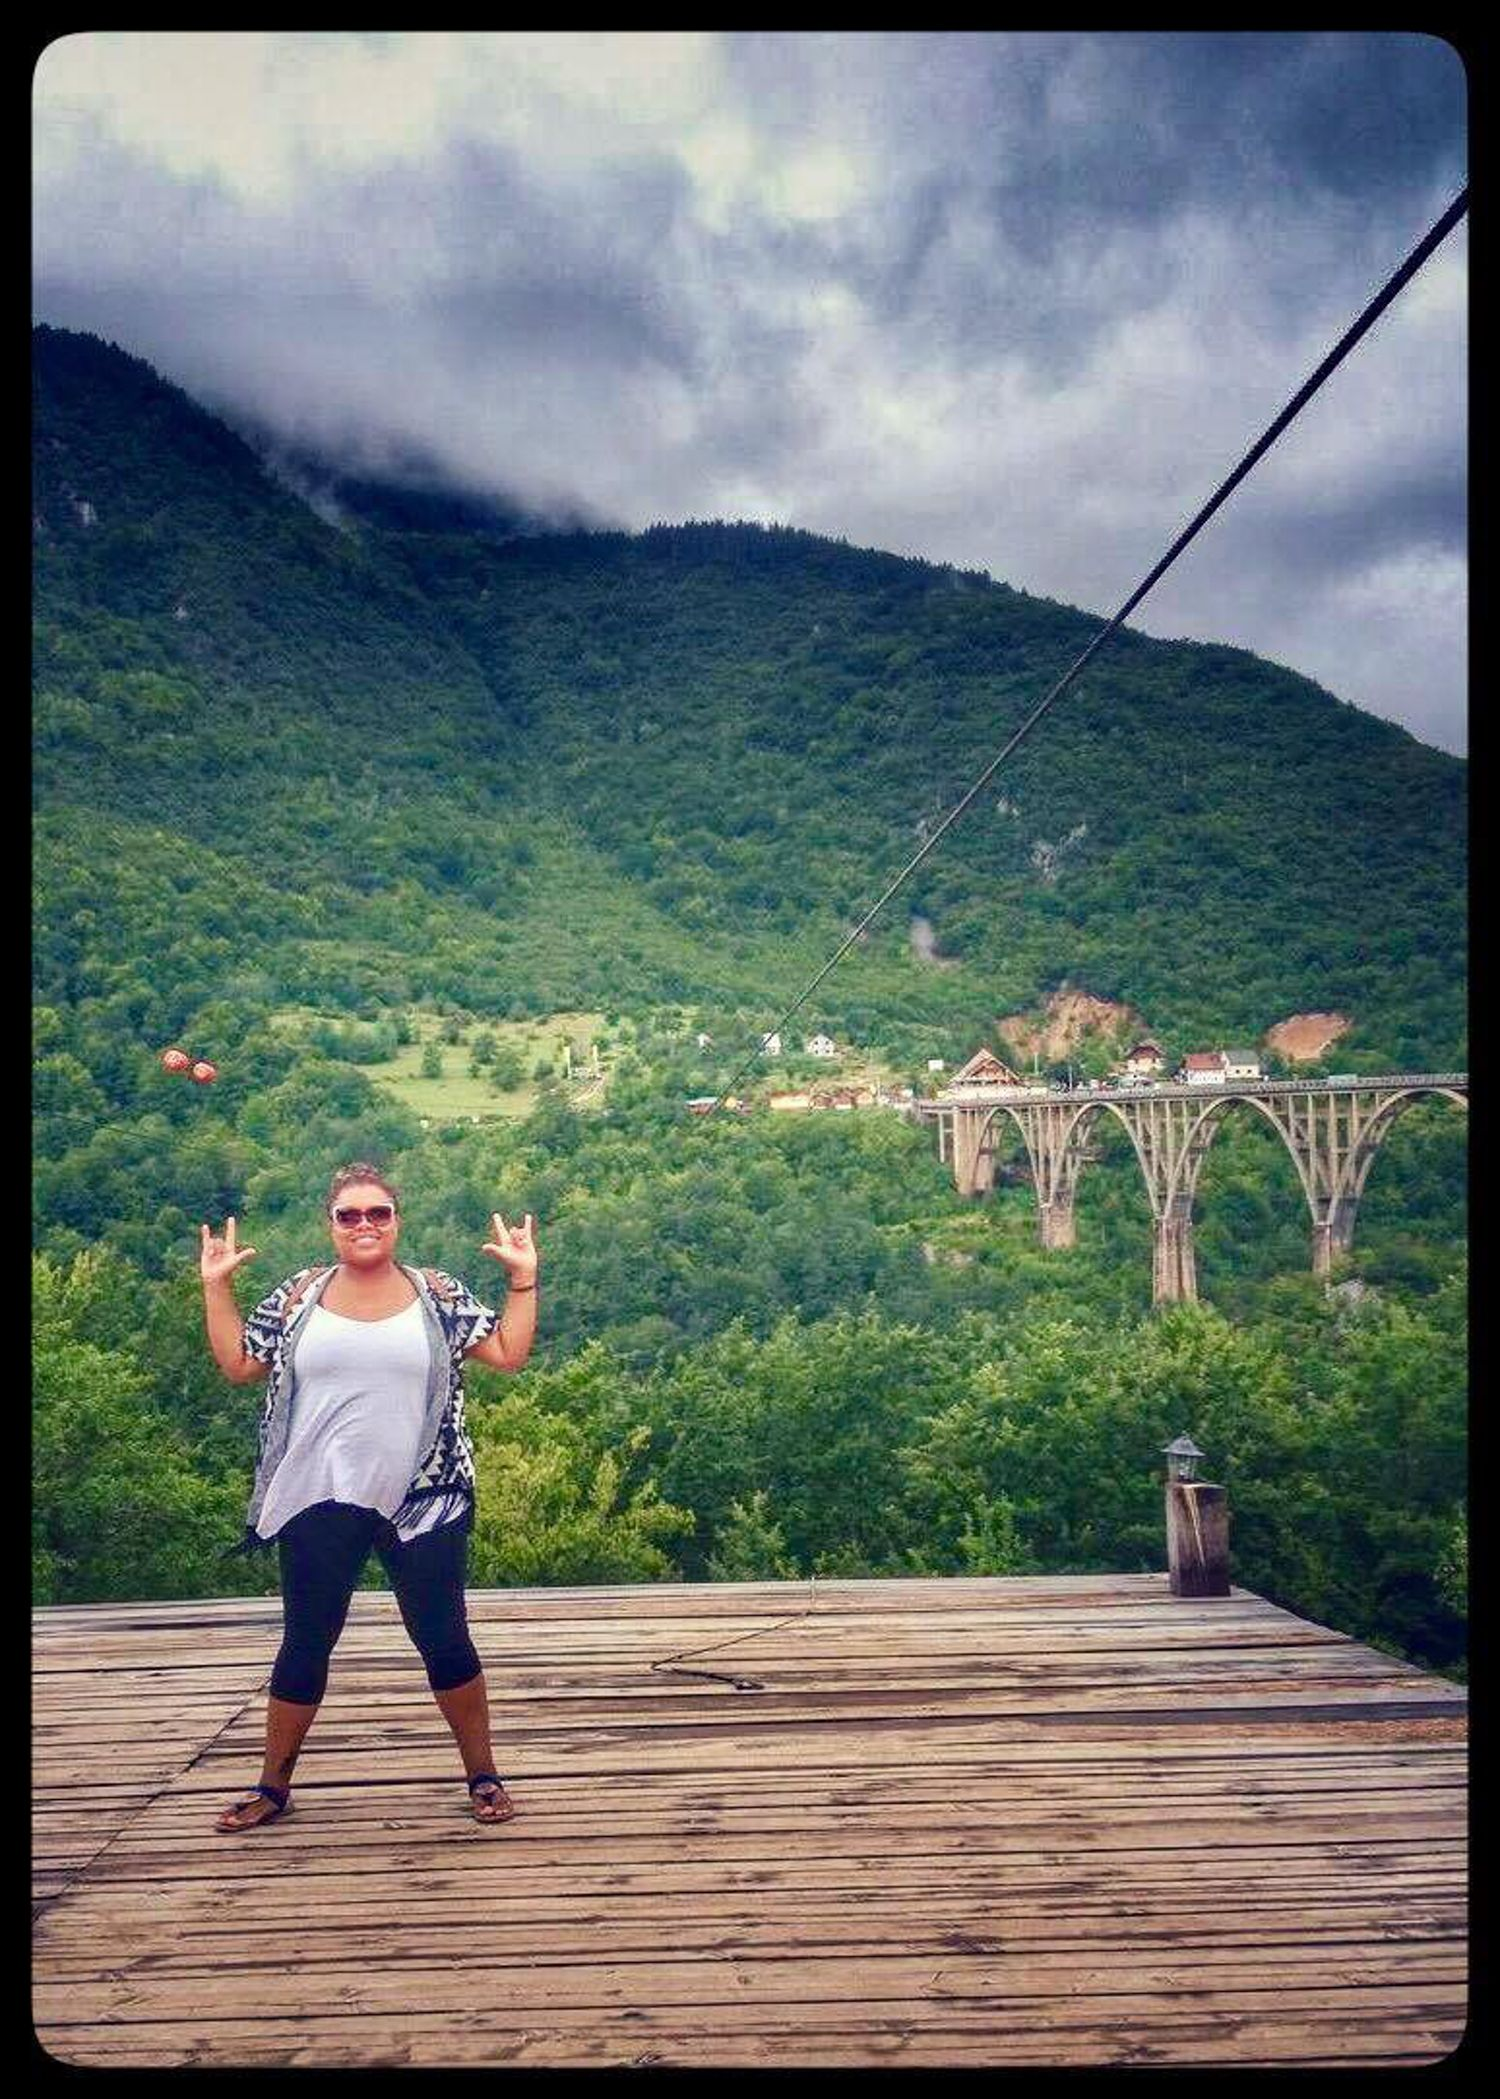 Adventure mandatory lifestyle; spontaneous zip lining at the Djurdjeciva Tara bridge in Montenegro.